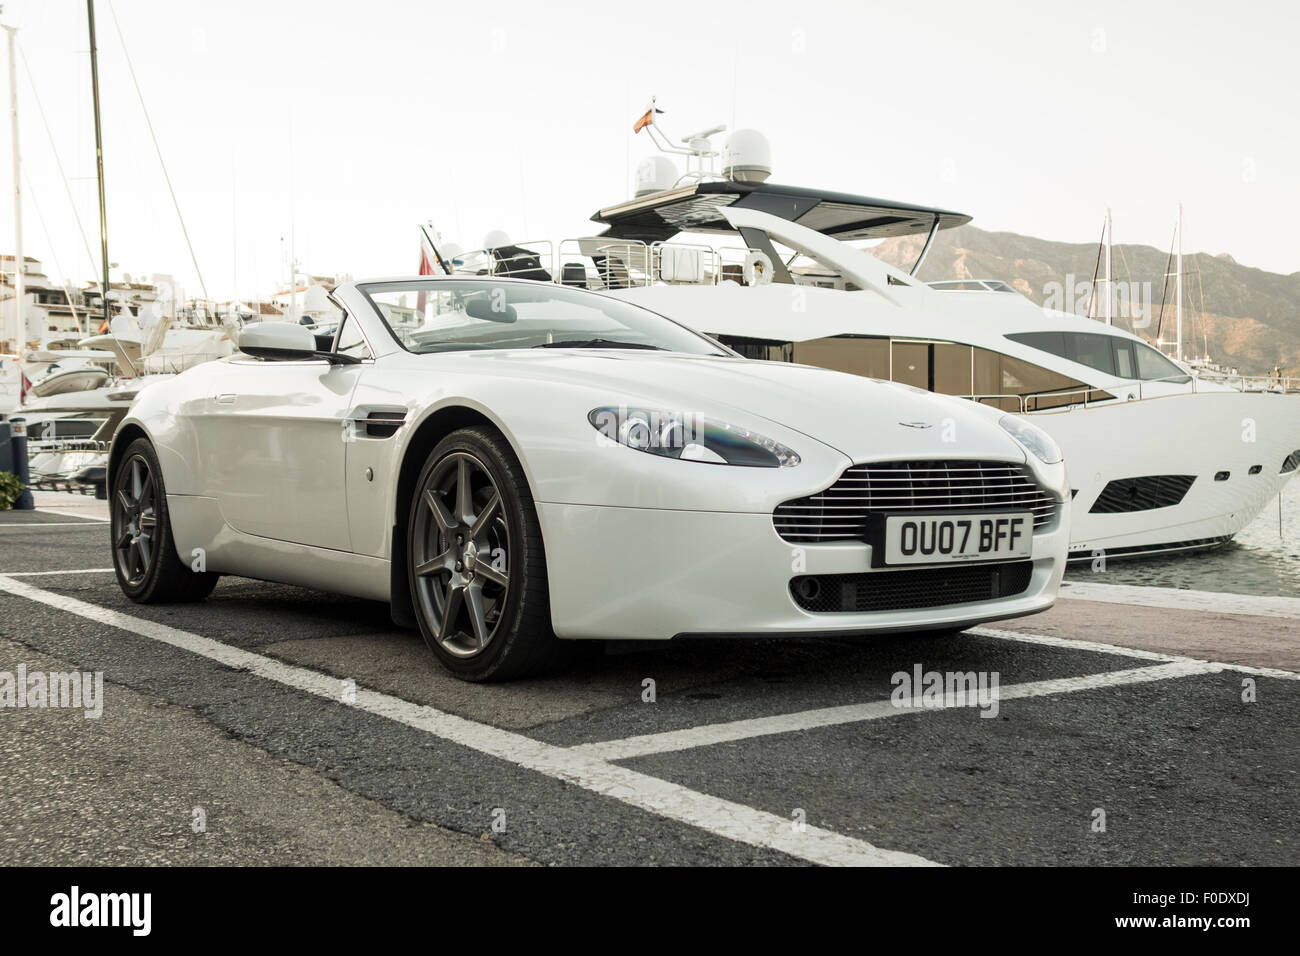 aston martin vantage v8 sports car parked in front of luxury yacht stock photo royalty free. Black Bedroom Furniture Sets. Home Design Ideas